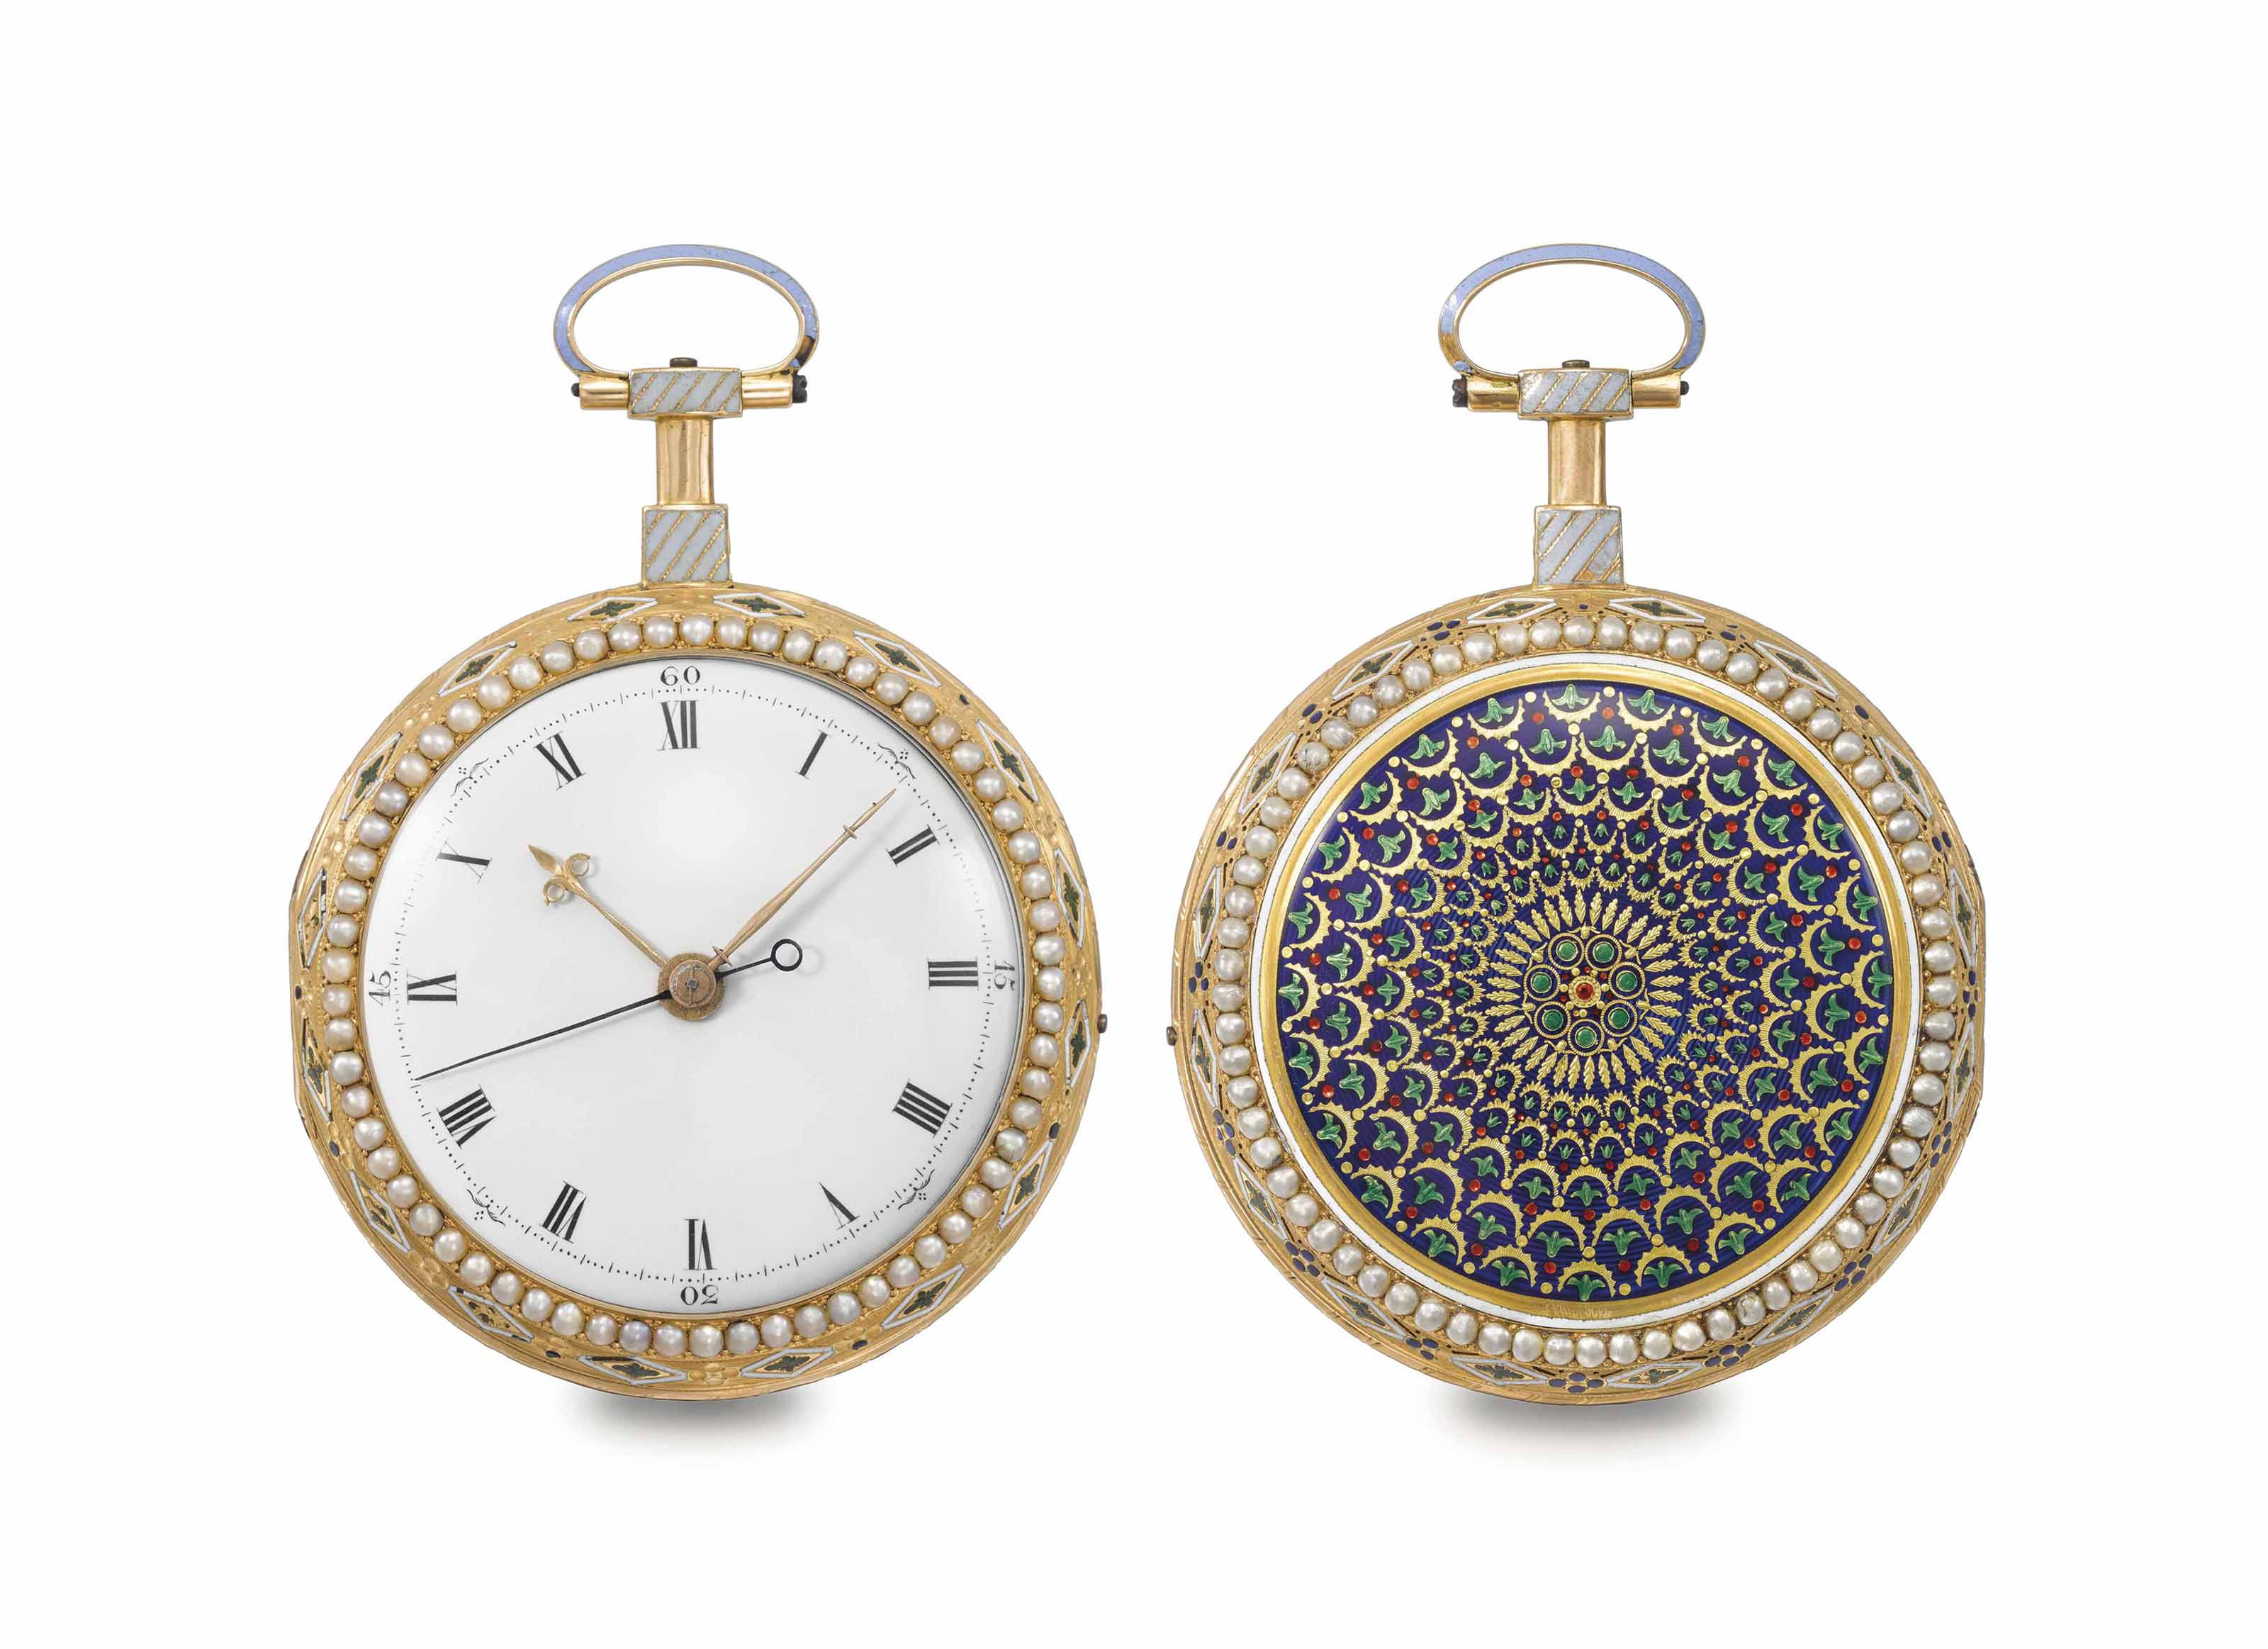 Swiss, attributed to Jaquet-Droz. A fine and rare 18K gold, enamel and pearl-set two train quarter striking clockwatch with centre seconds, made for the Chinese Market